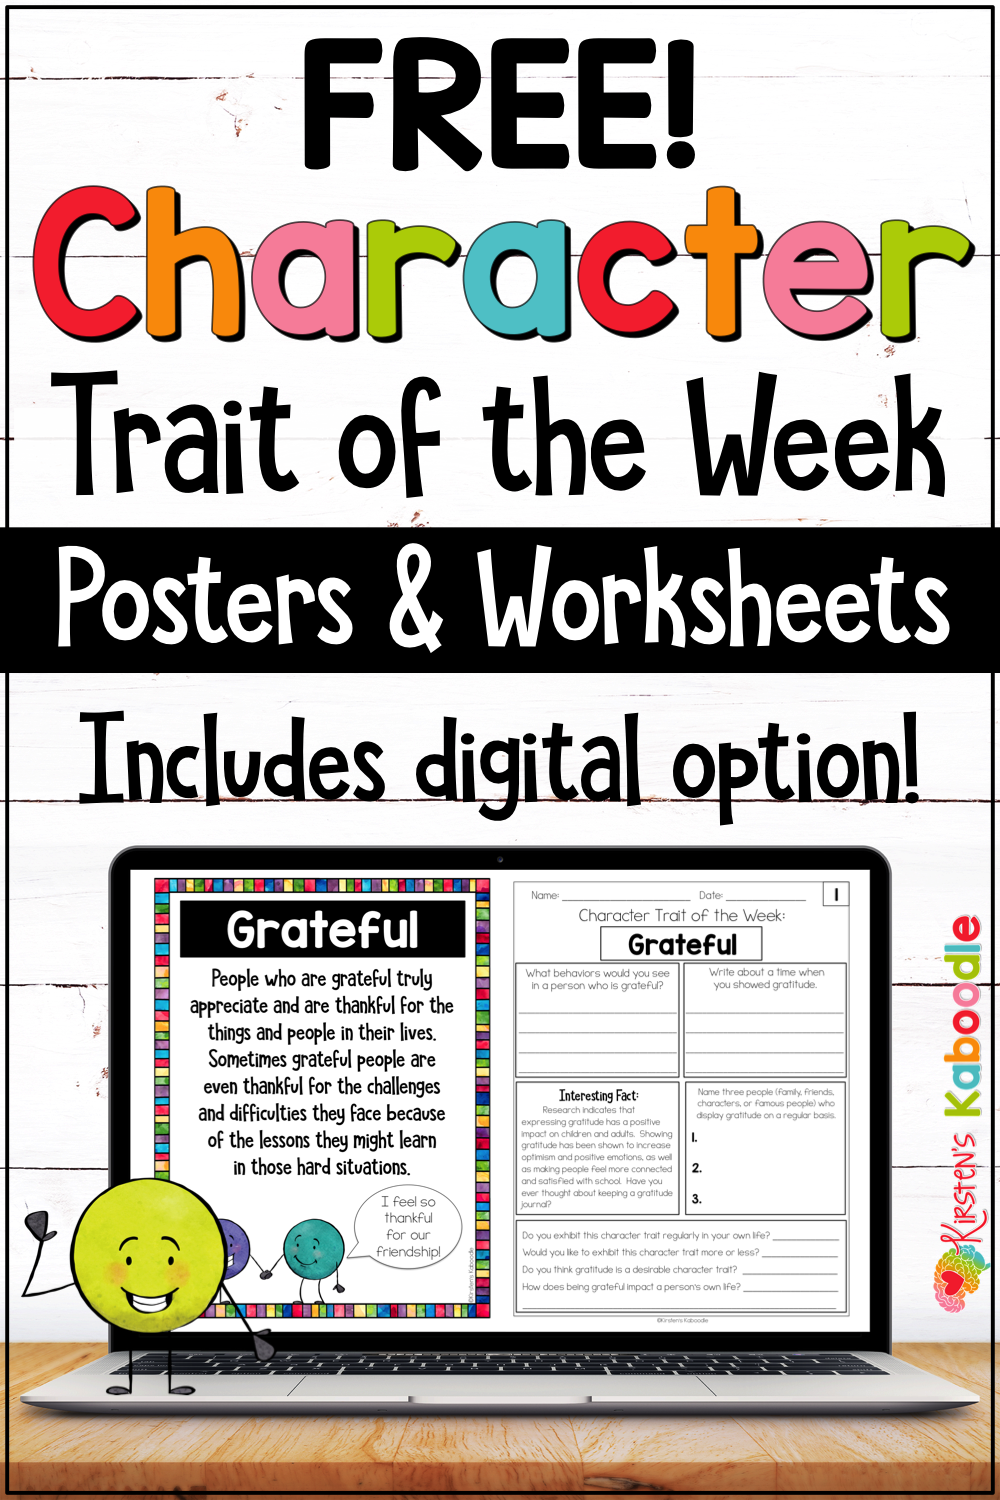 Free Character Trait Of The Week Graphic Organizers Posters With Digital Op Social Emotional Learning Activities Teaching Character Traits Teaching Character [ 1500 x 1000 Pixel ]